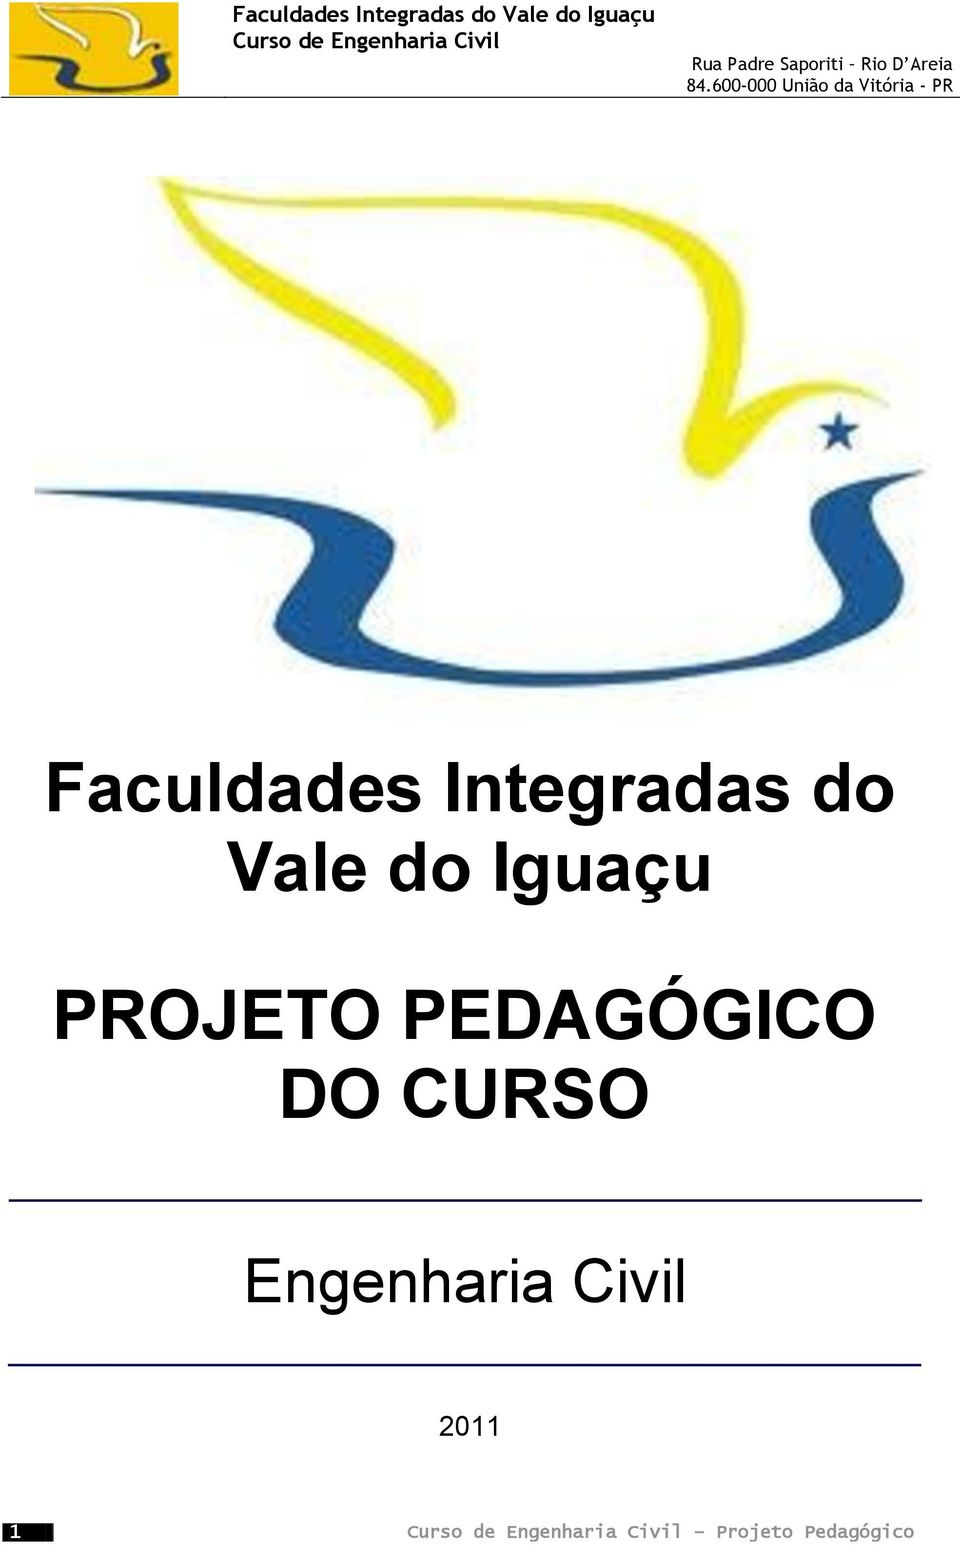 PEDAGÓGICO DO CURSO